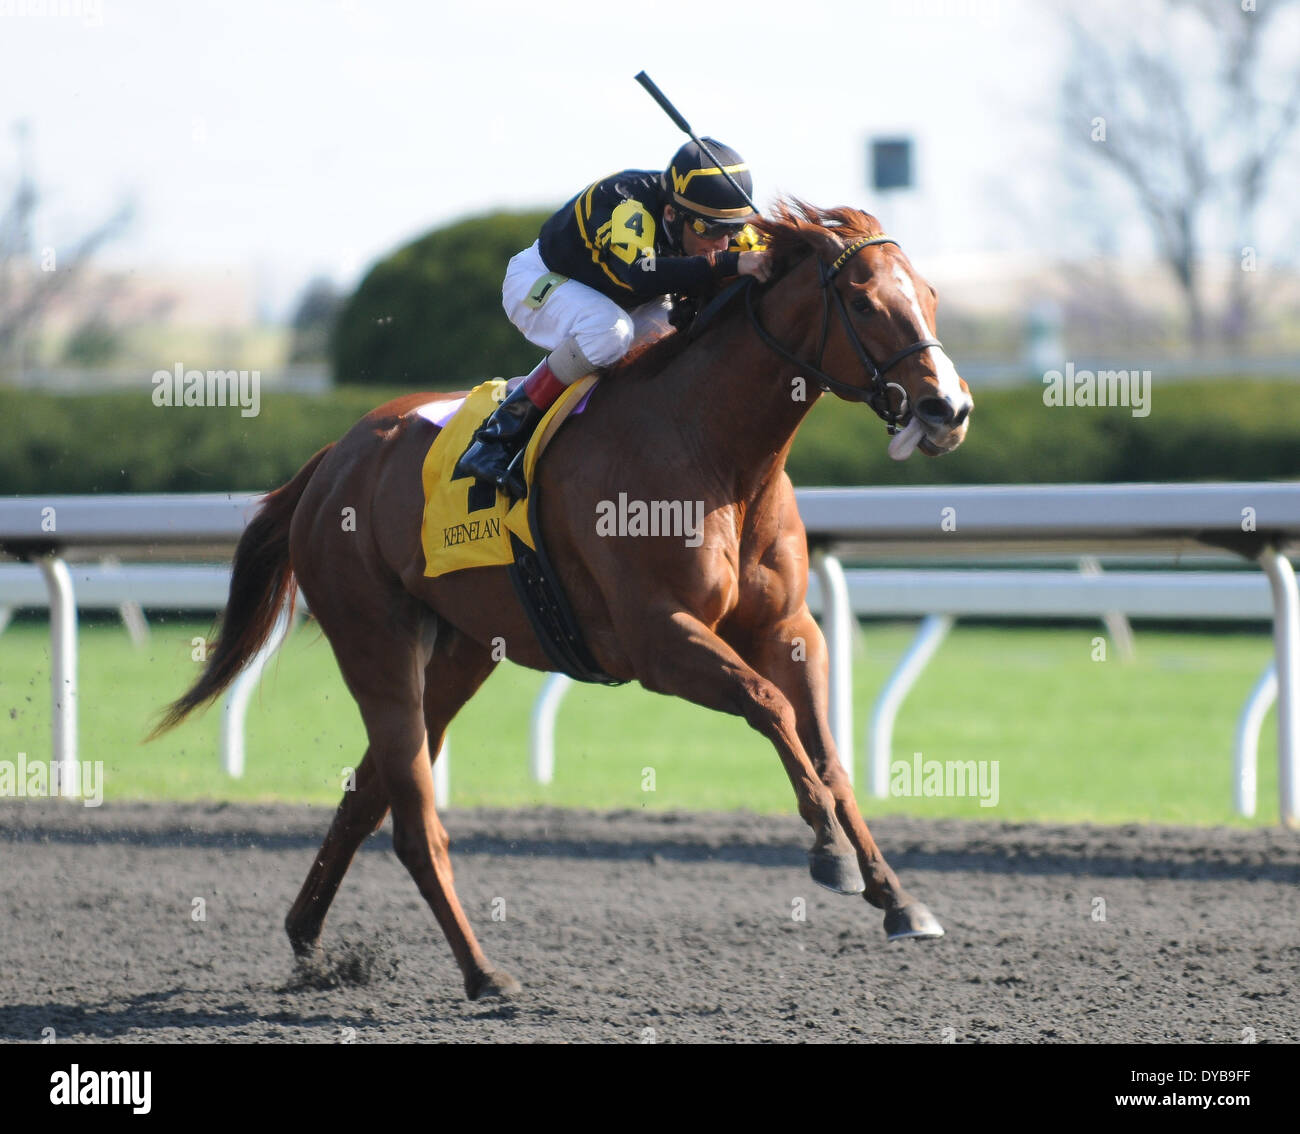 Lexington, KY, USA. 12th Apr, 2014. Aoril 12, 2014: Judy the Beauty and jockey John Velazquez win the G1 Madison S. at Keeneland for owner and trainer Wesley Ward.Jessica Morgan/ESW/CSM/Alamy Live News - Stock Image